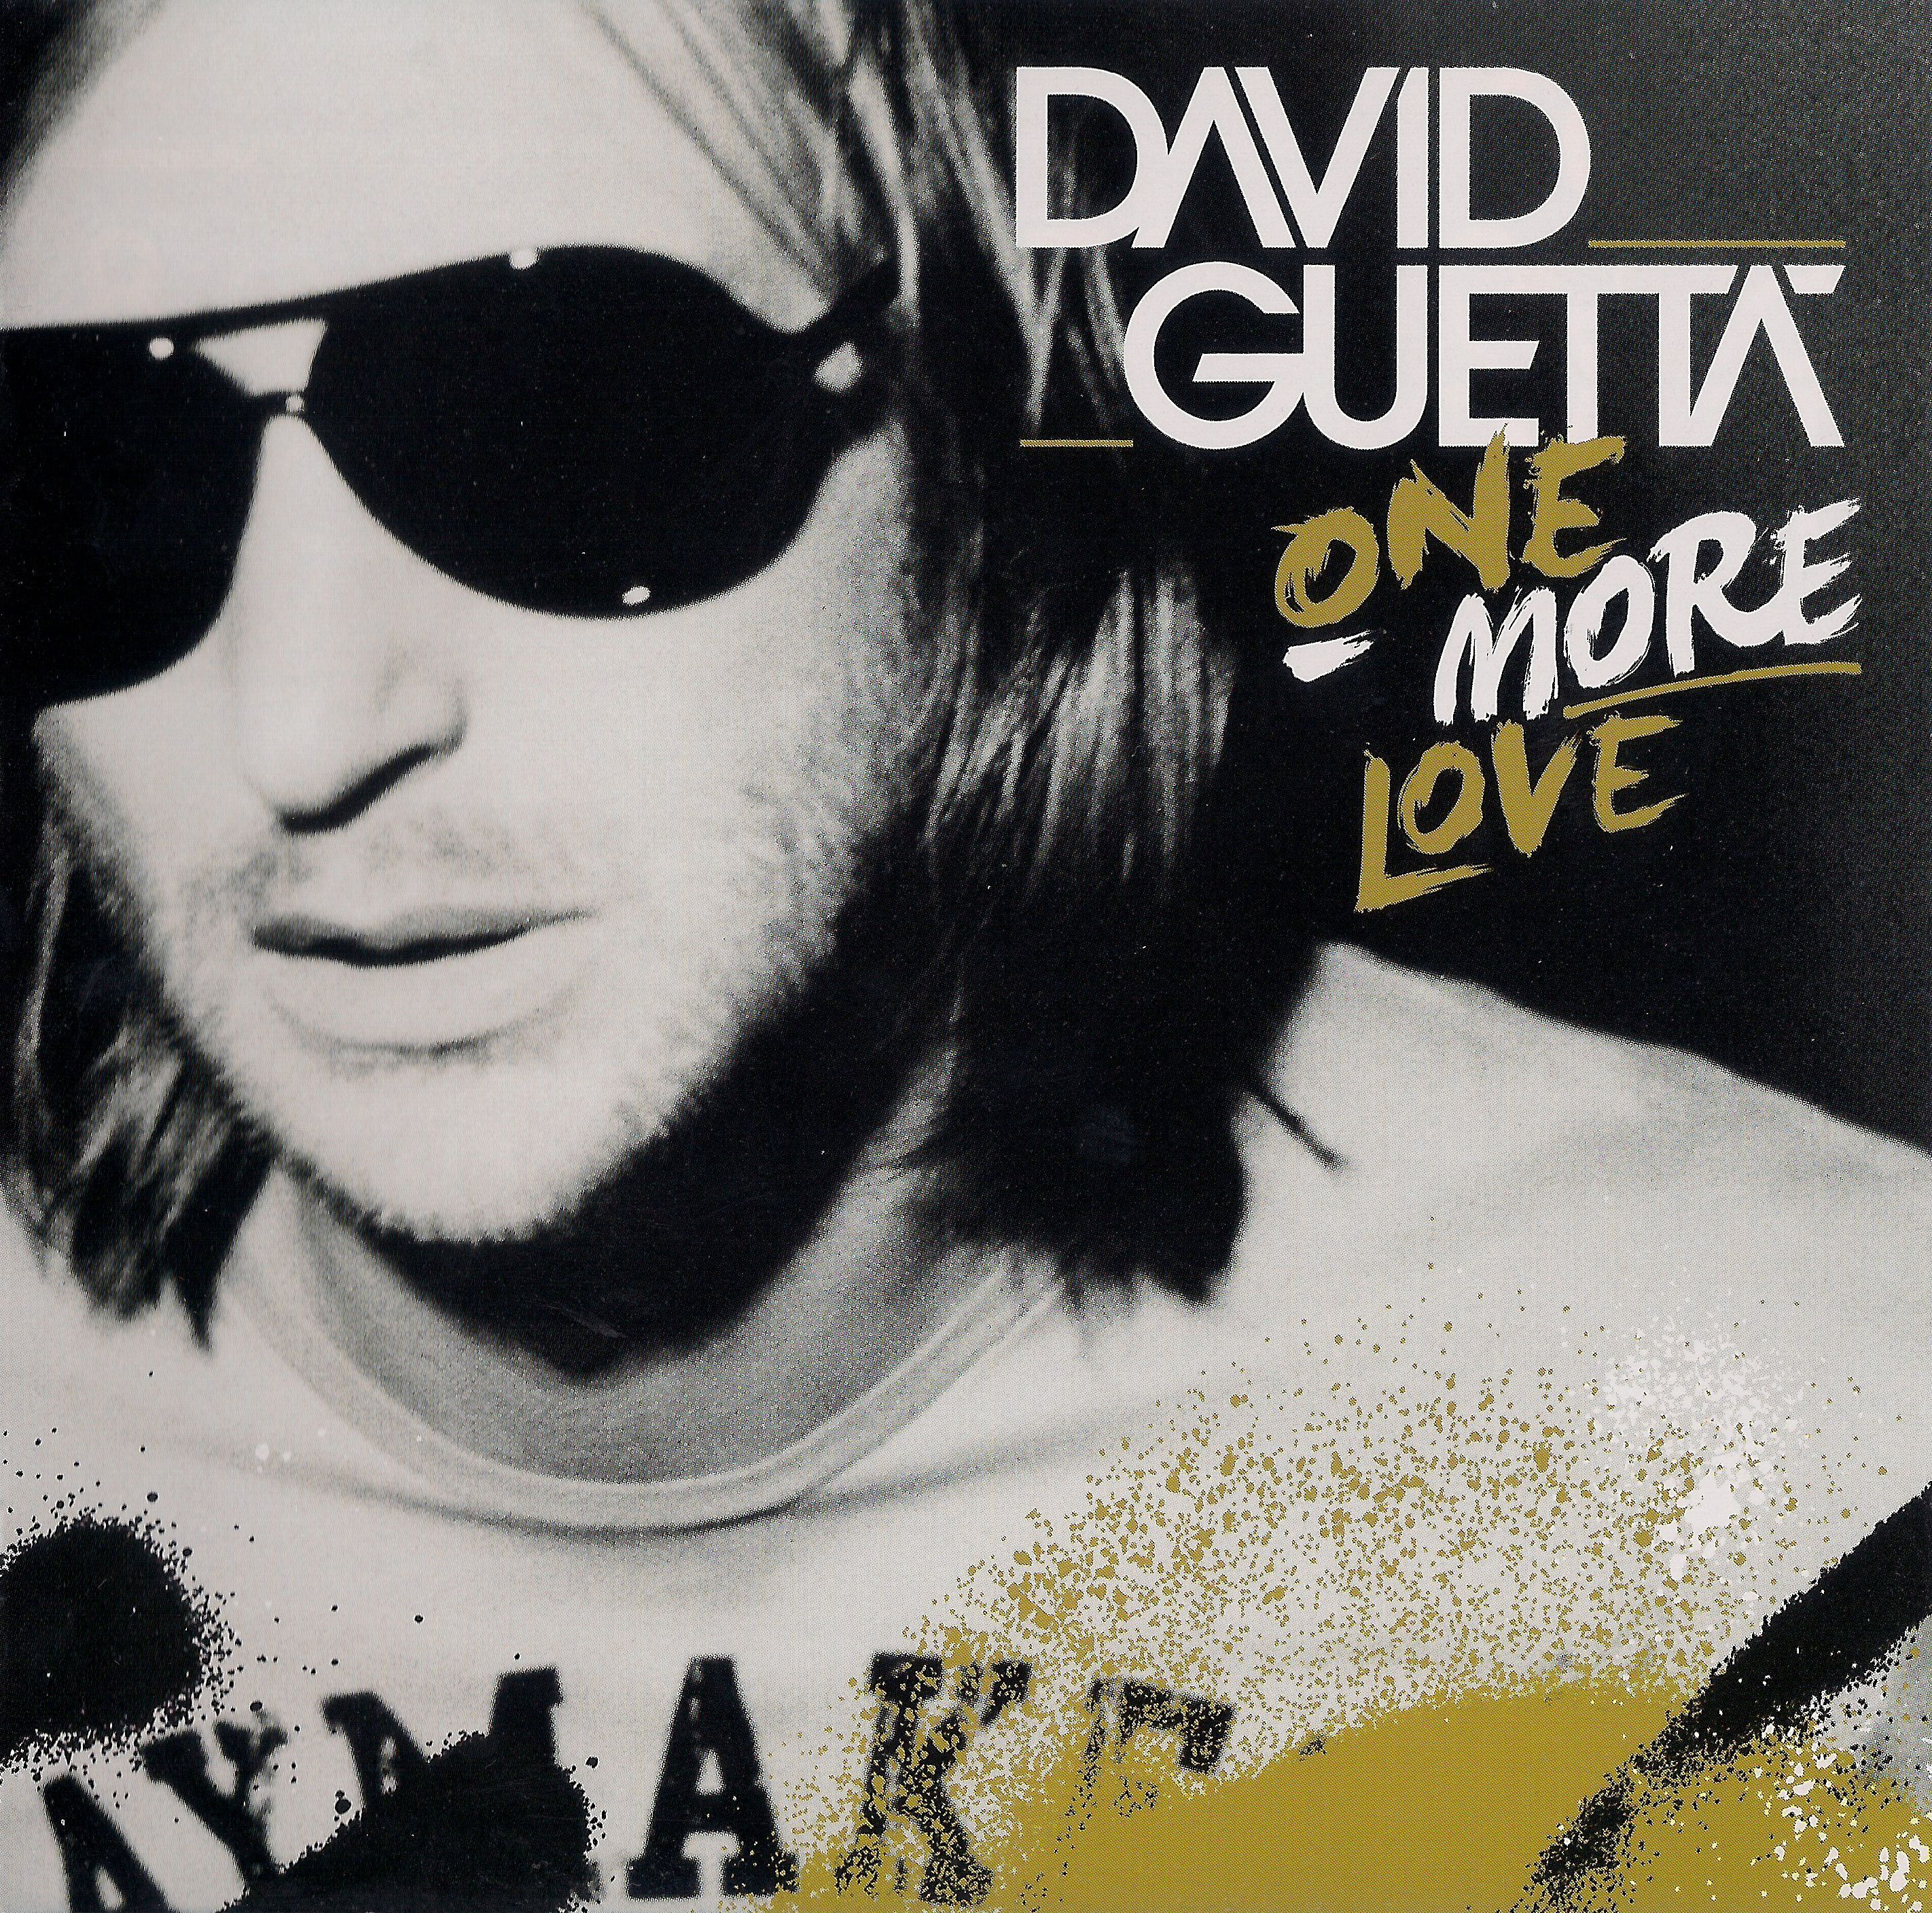 David Guetta - One More Love album cover